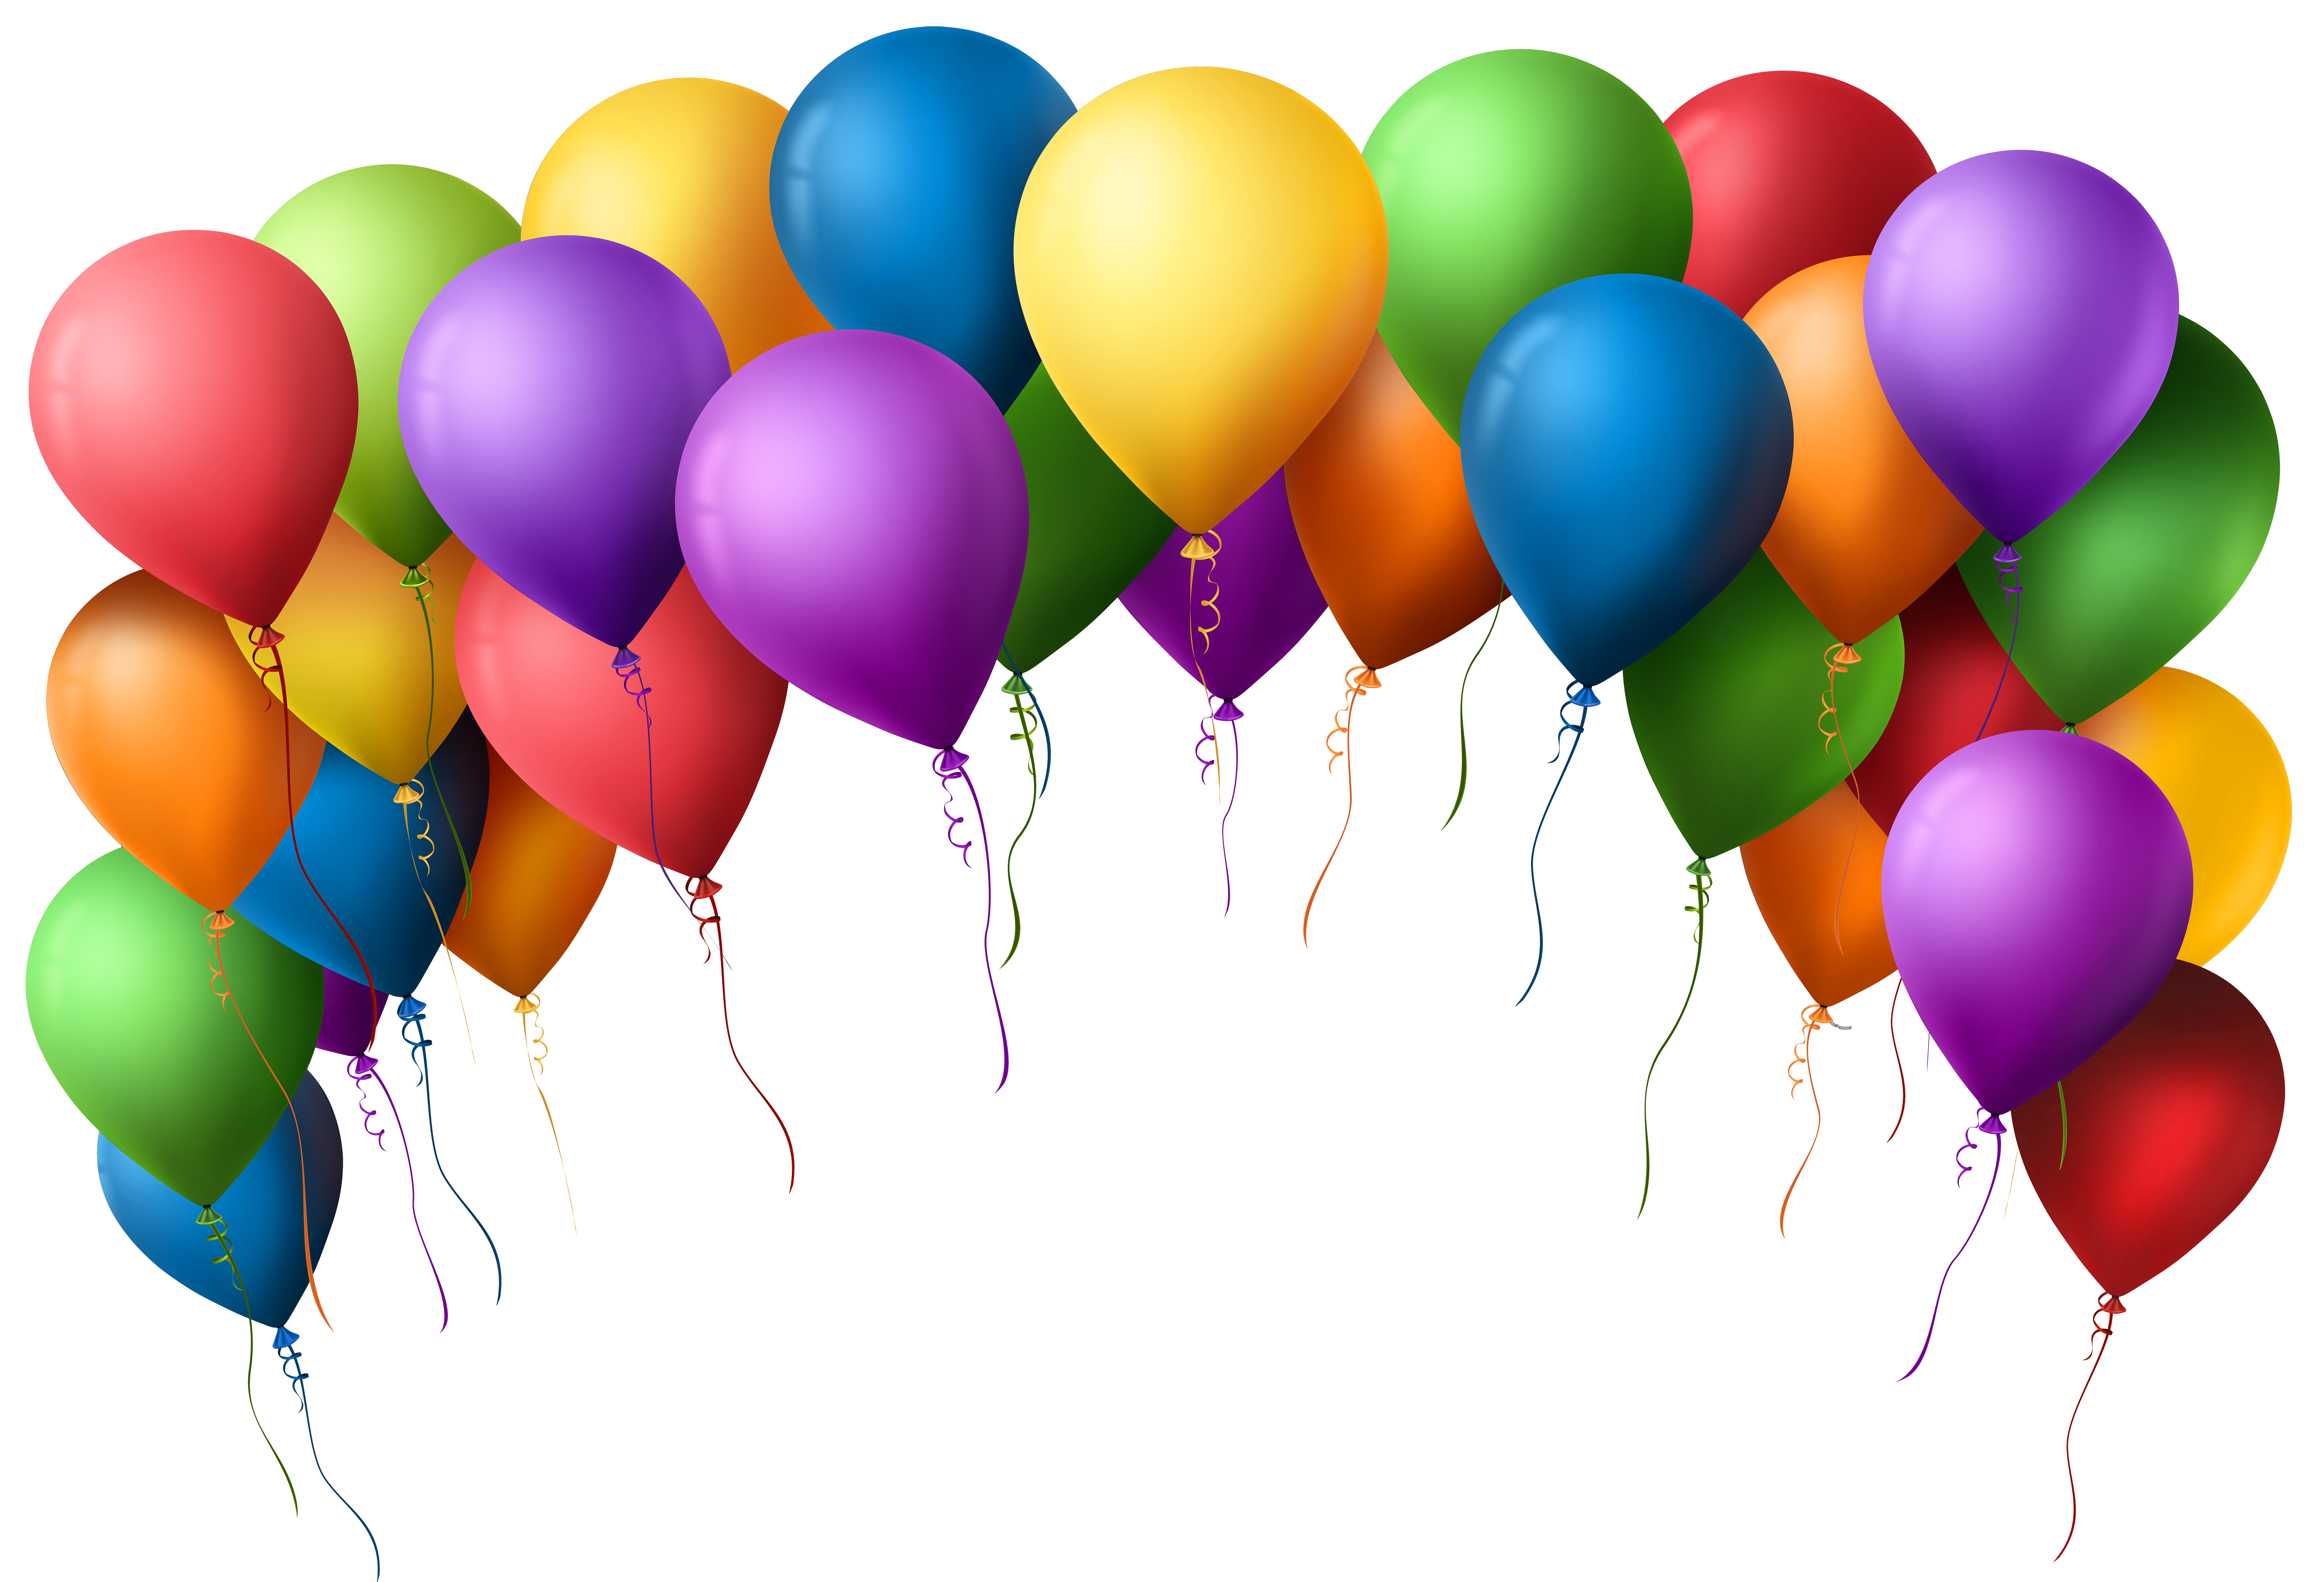 balloons png balloon background cliparts download clip art #9343